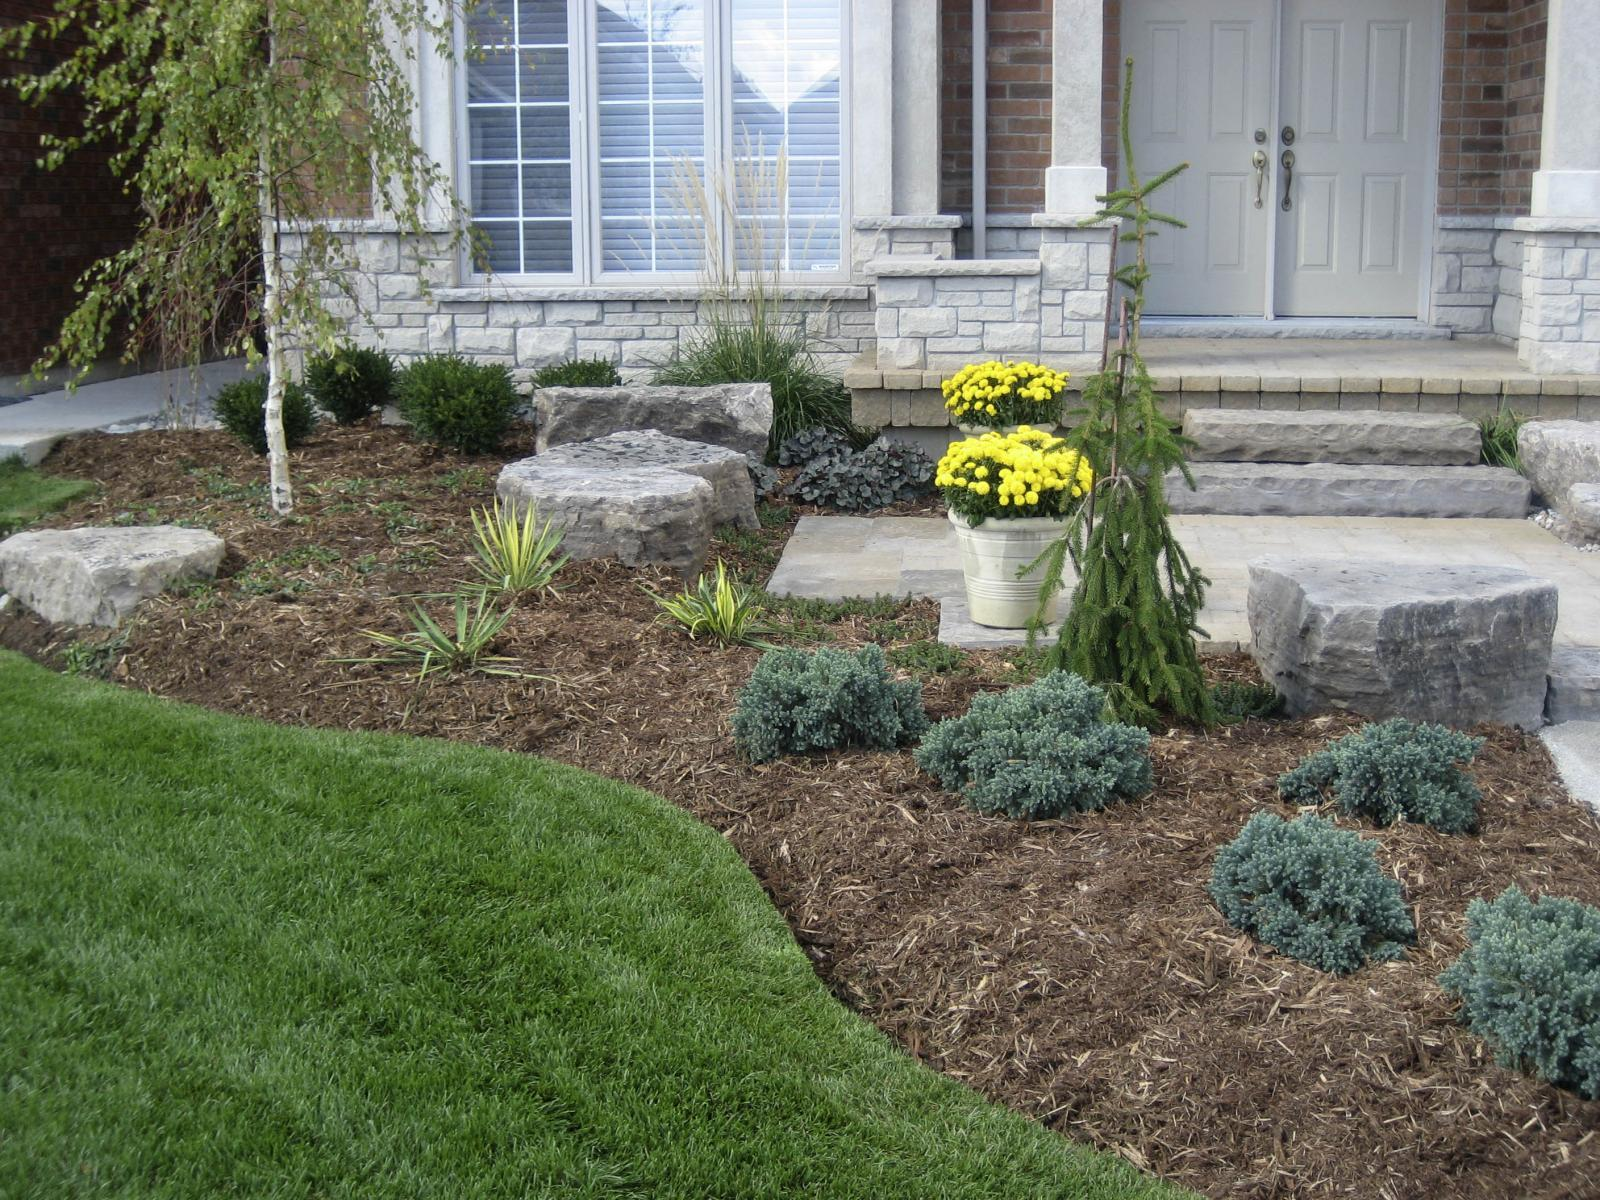 Landscape contractor rating system